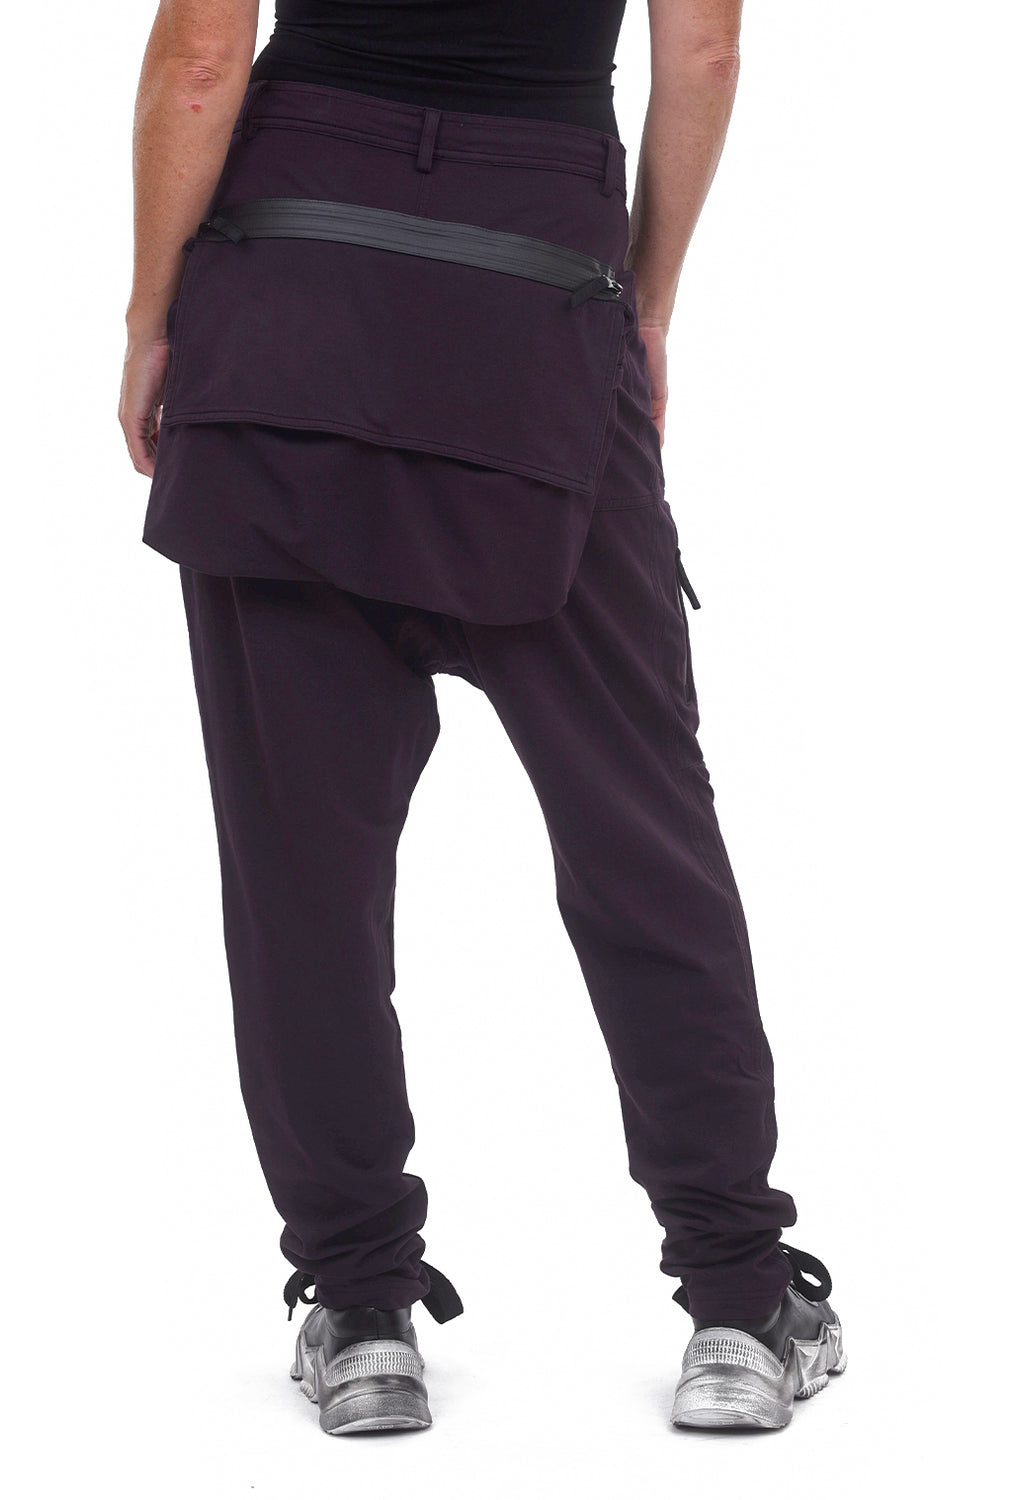 Rundholz Black Label Big Zip Pocket Pants, Merlot